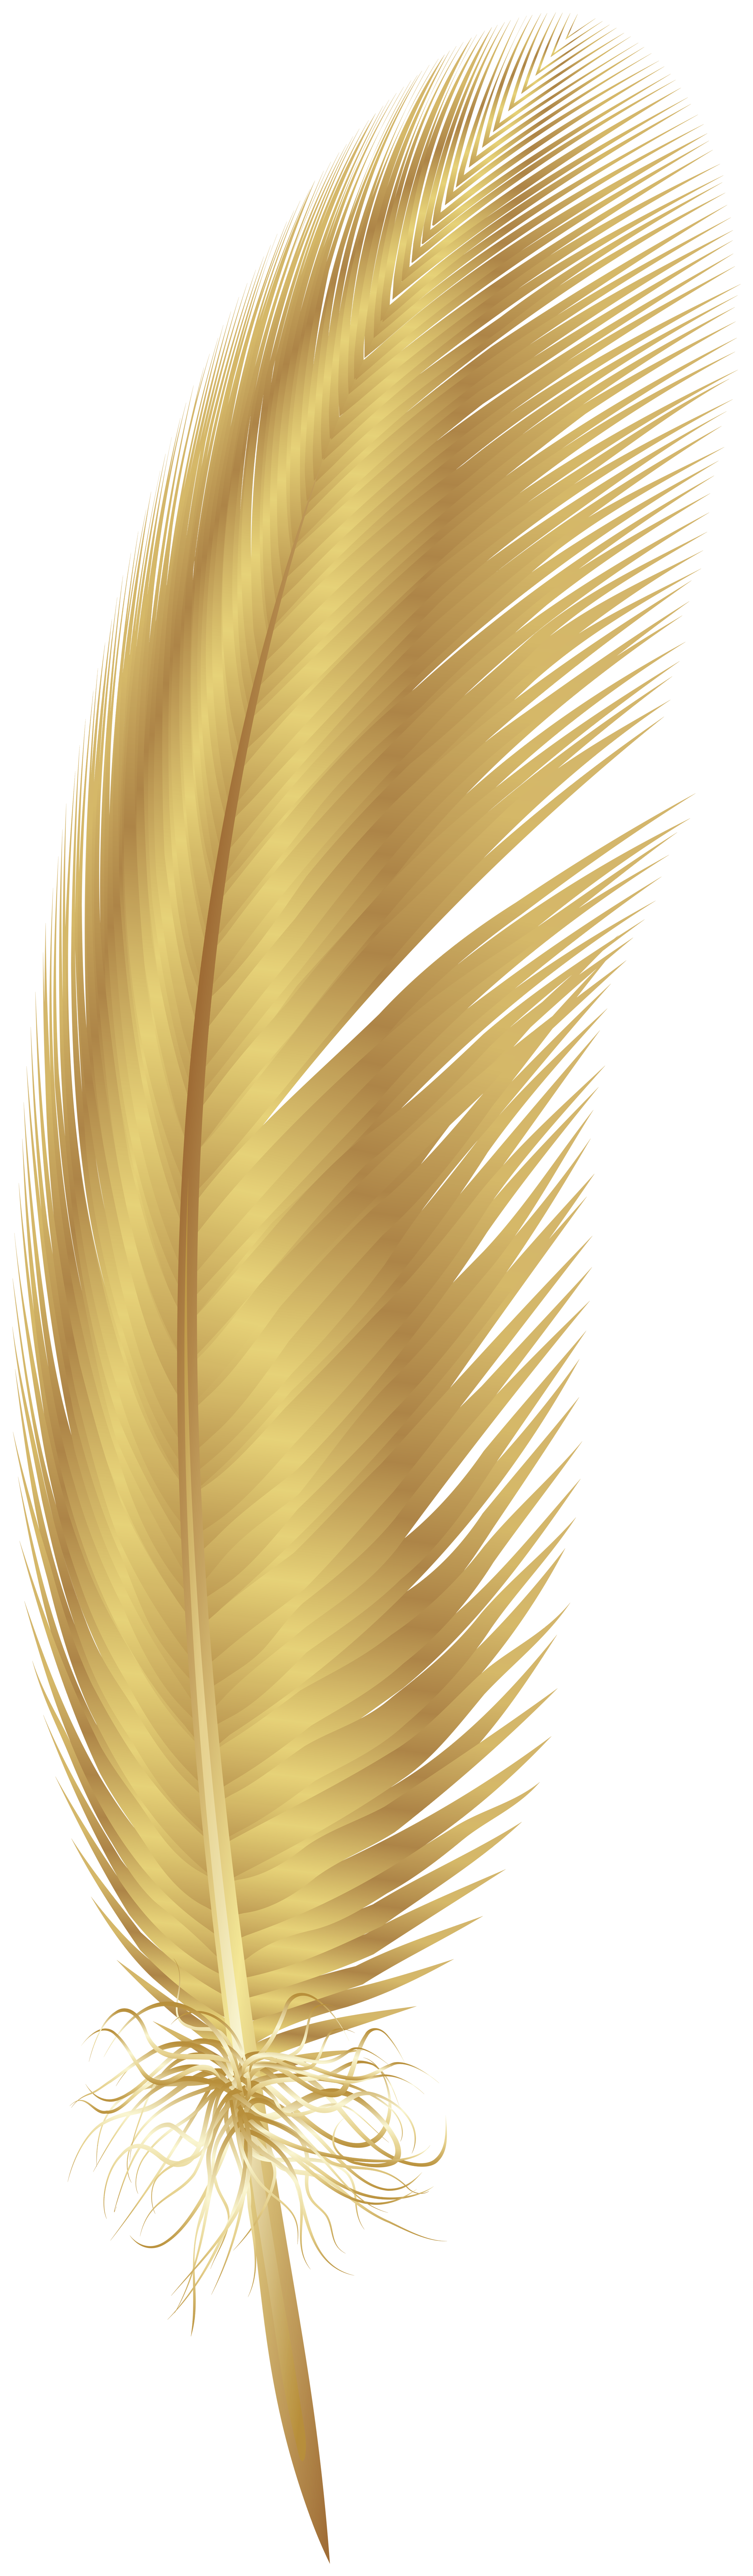 Golden Feather Png Clip Art Gallery Yopriceville High Quality Images And Transparent Png Free Clipart Free Clip Art Clip Art Png